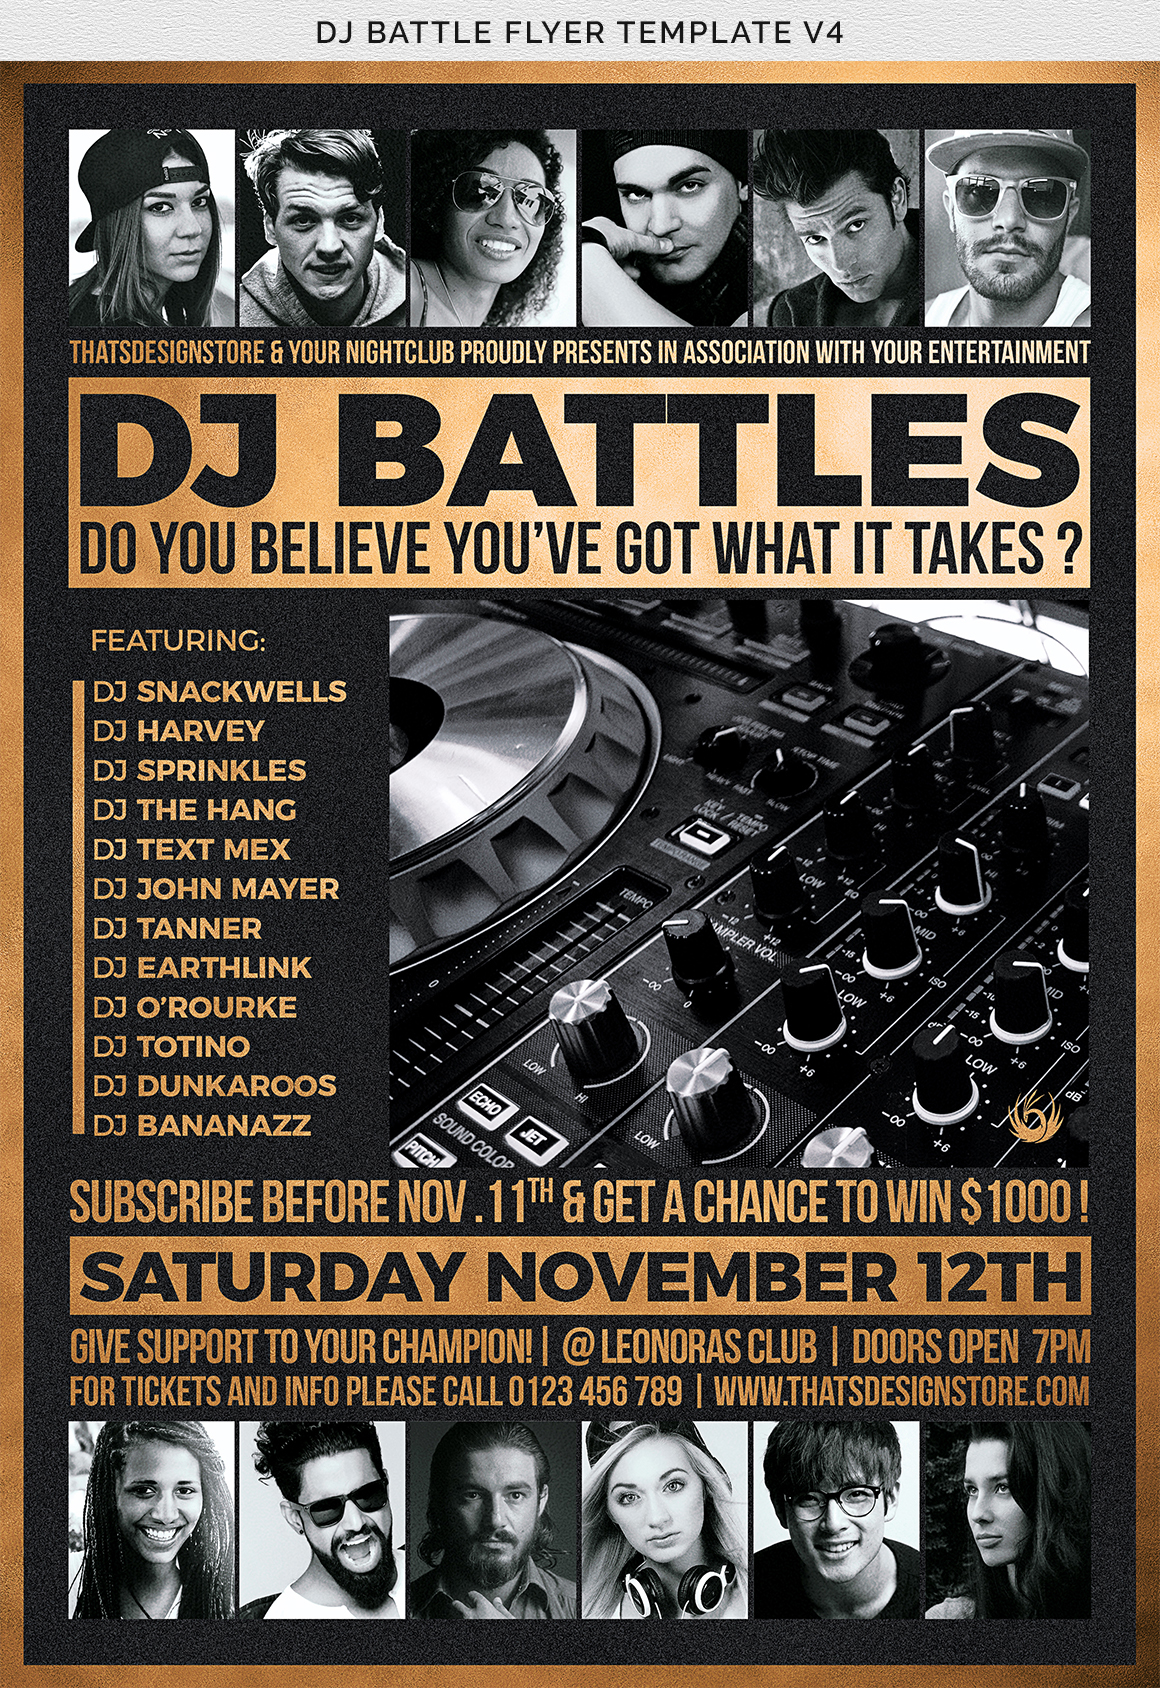 DJ Battle Flyer Template V4 example image 9